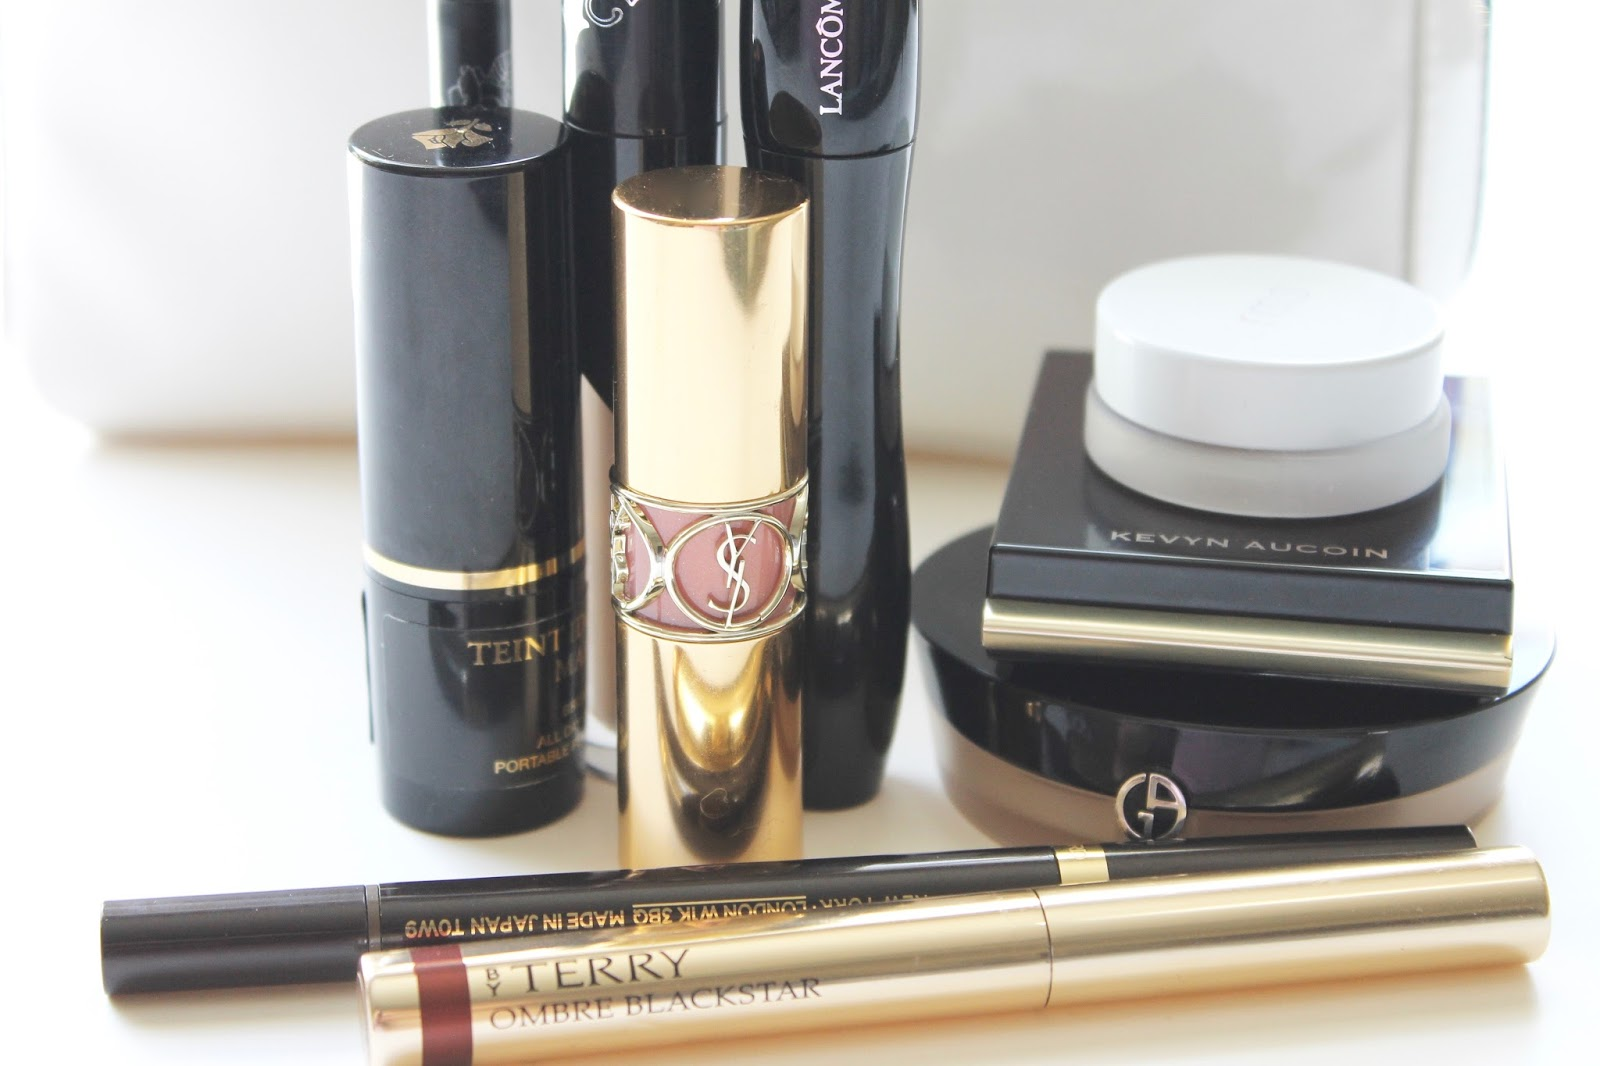 ONLY THE ESSENTIALS: PACKING JUST 10 MAKEUP PRODUCTS